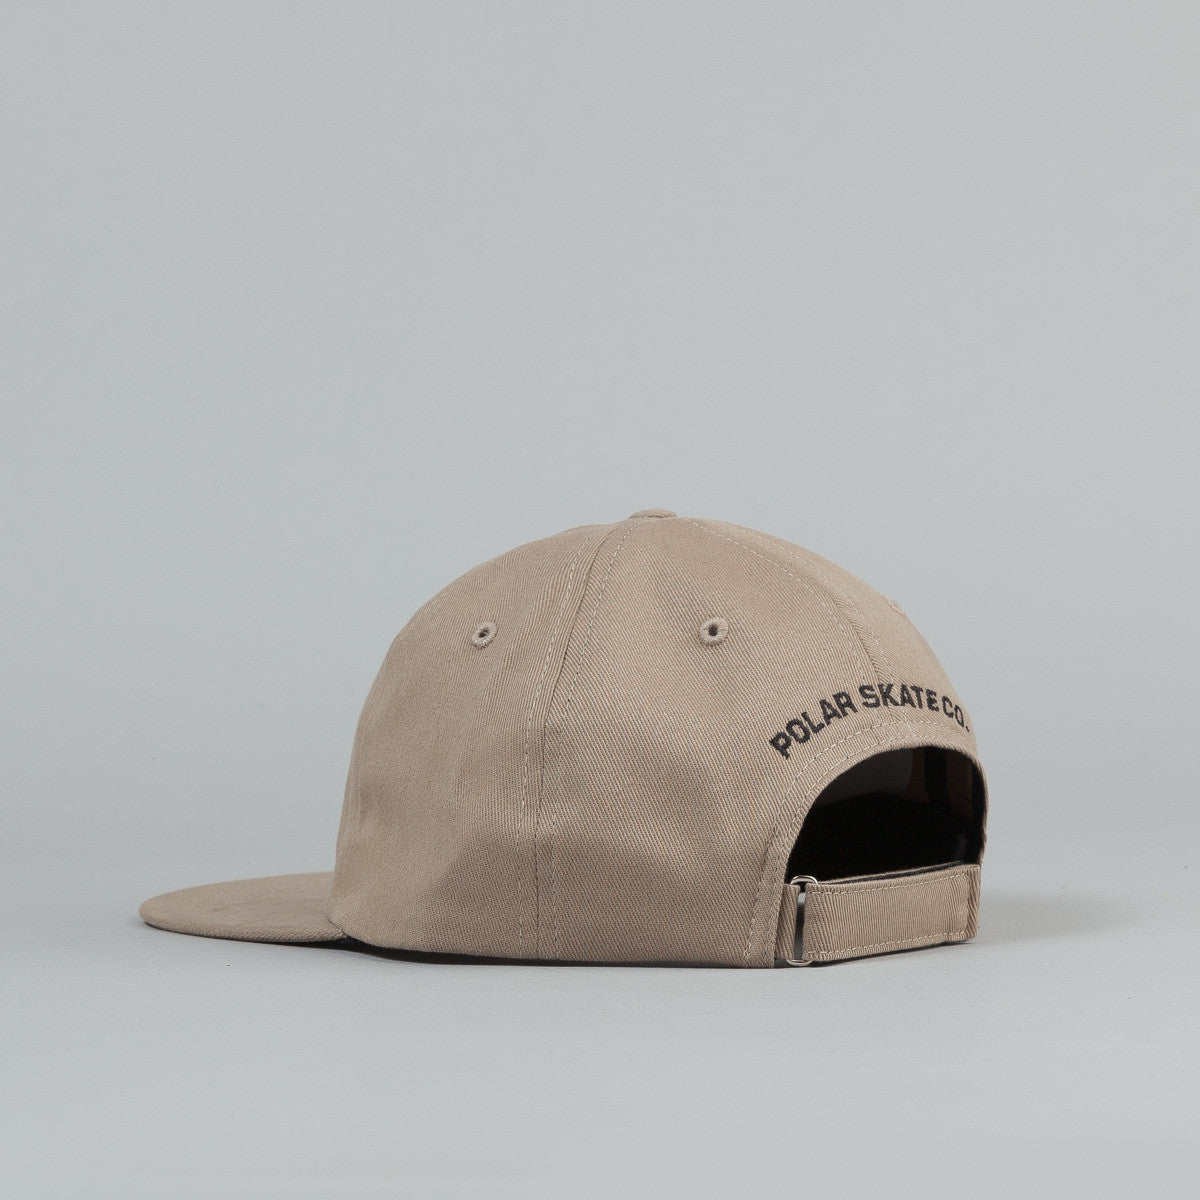 Polar No Comply Cap - Khaki / Black